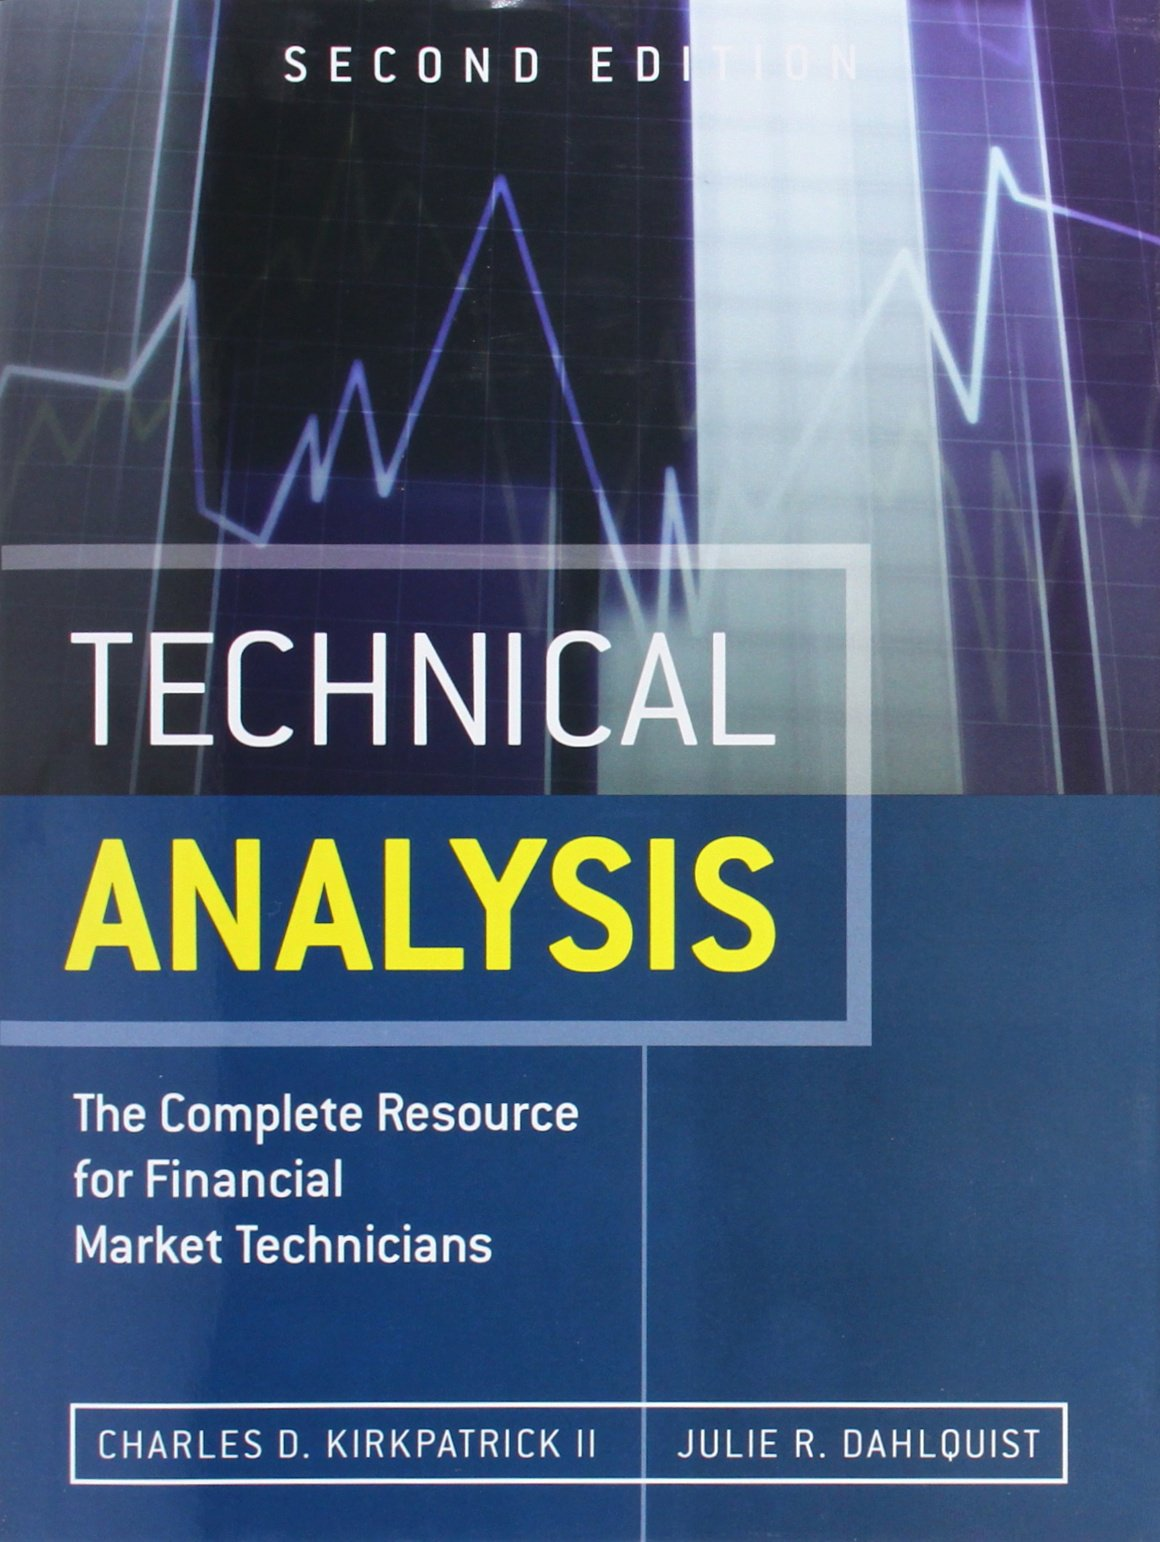 Buy Technical Analysis: The Complete Resource For Financial Market  Technicians Book Online At Low Prices In India | Technical Analysis: The  Complete ...